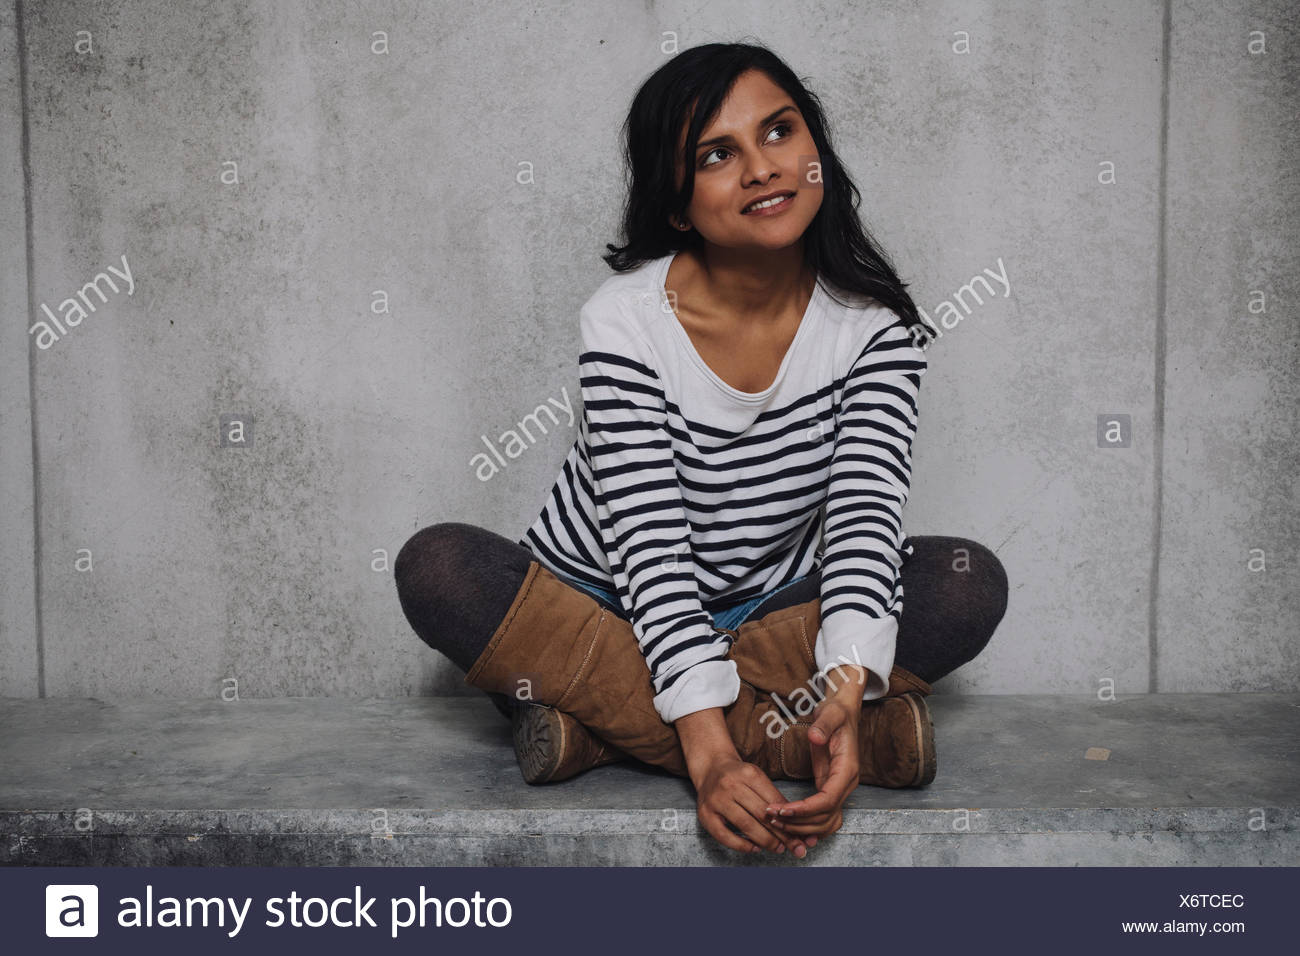 Female Indian sitting on concrete wall Stock Photo